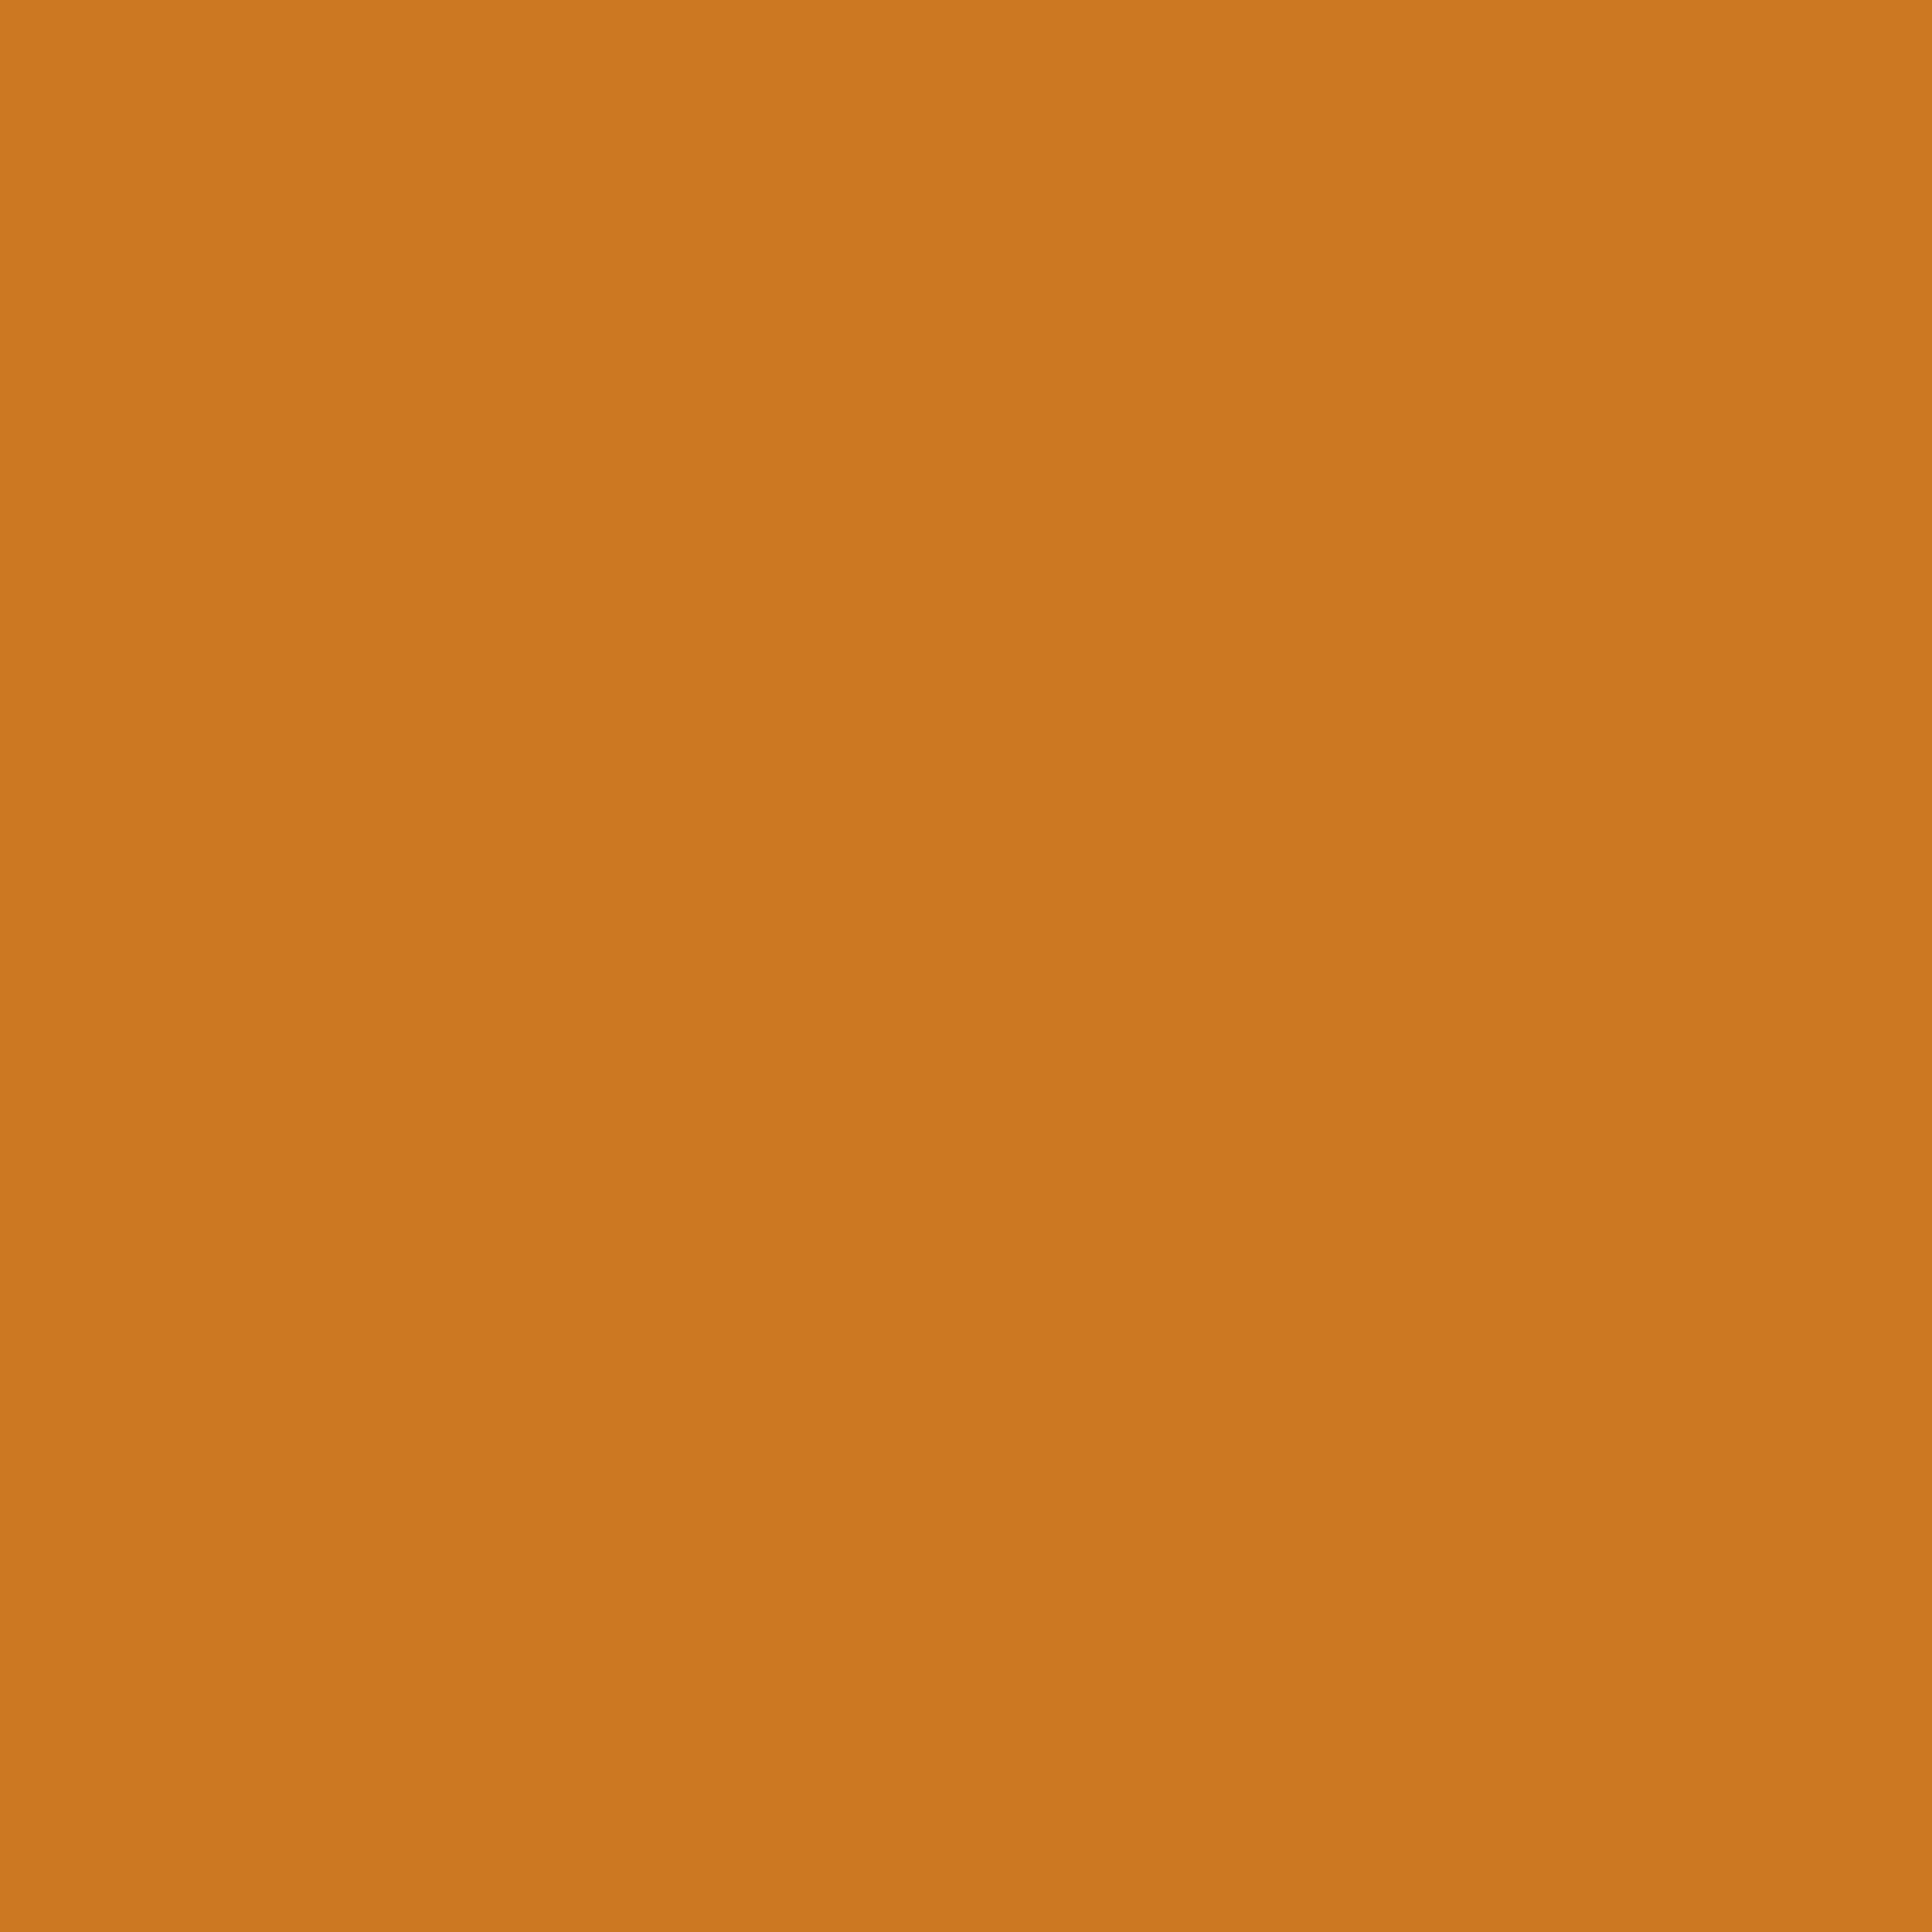 2732x2732 Ochre Solid Color Background